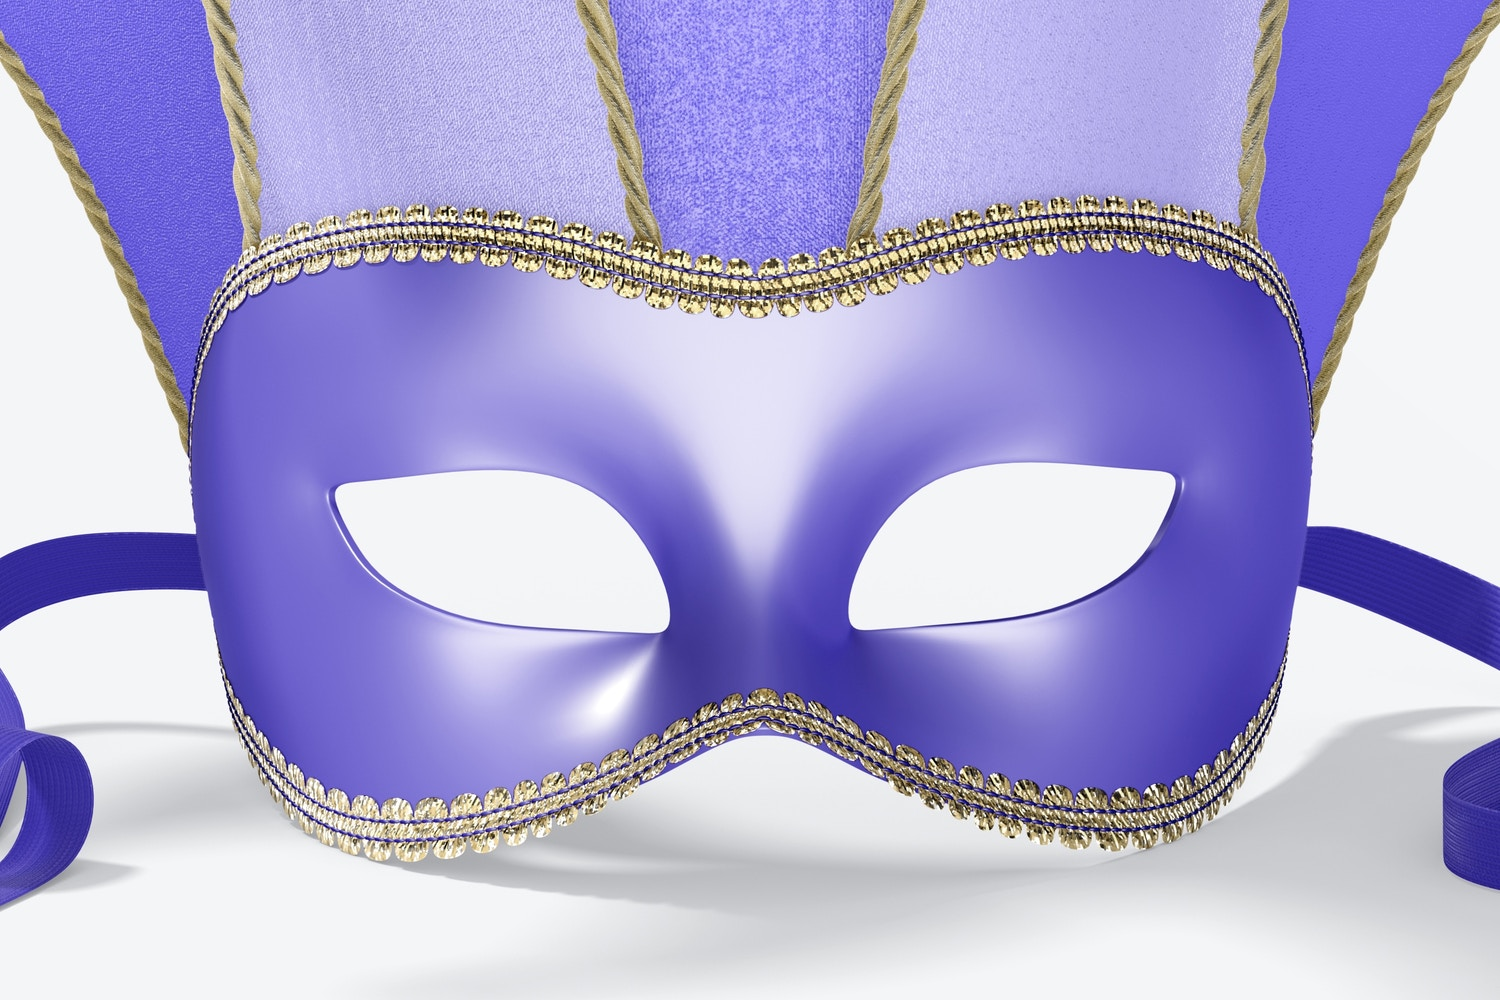 Jester Half-Face Mask Mockup, Front View